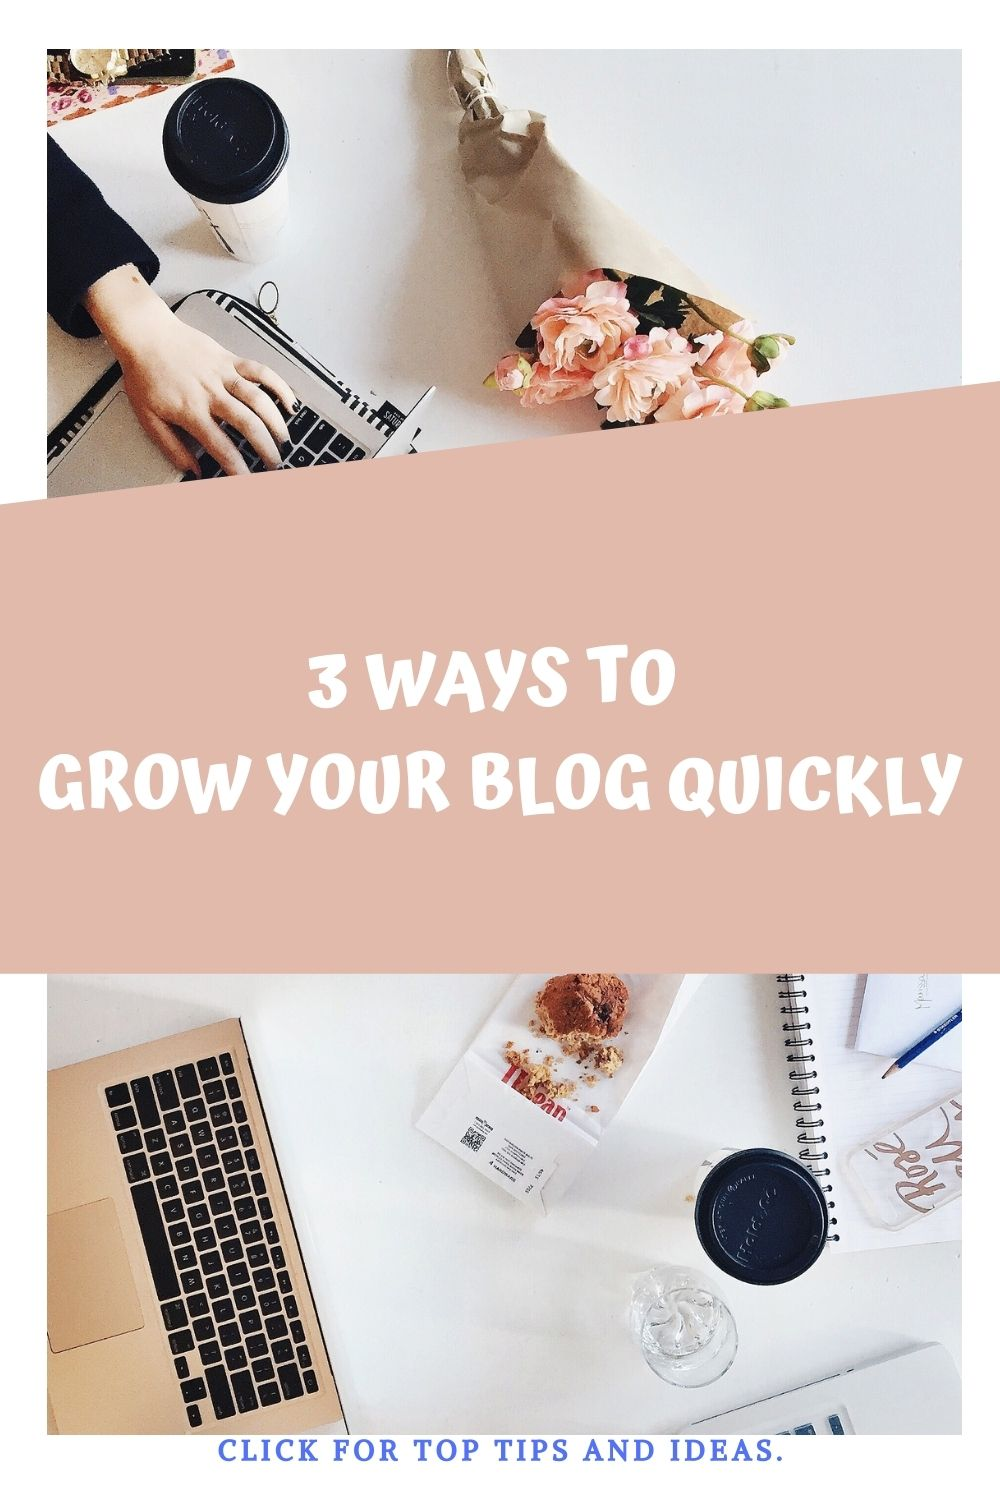 Pin This! (3 Ways to Grow Your Blog Quickly)